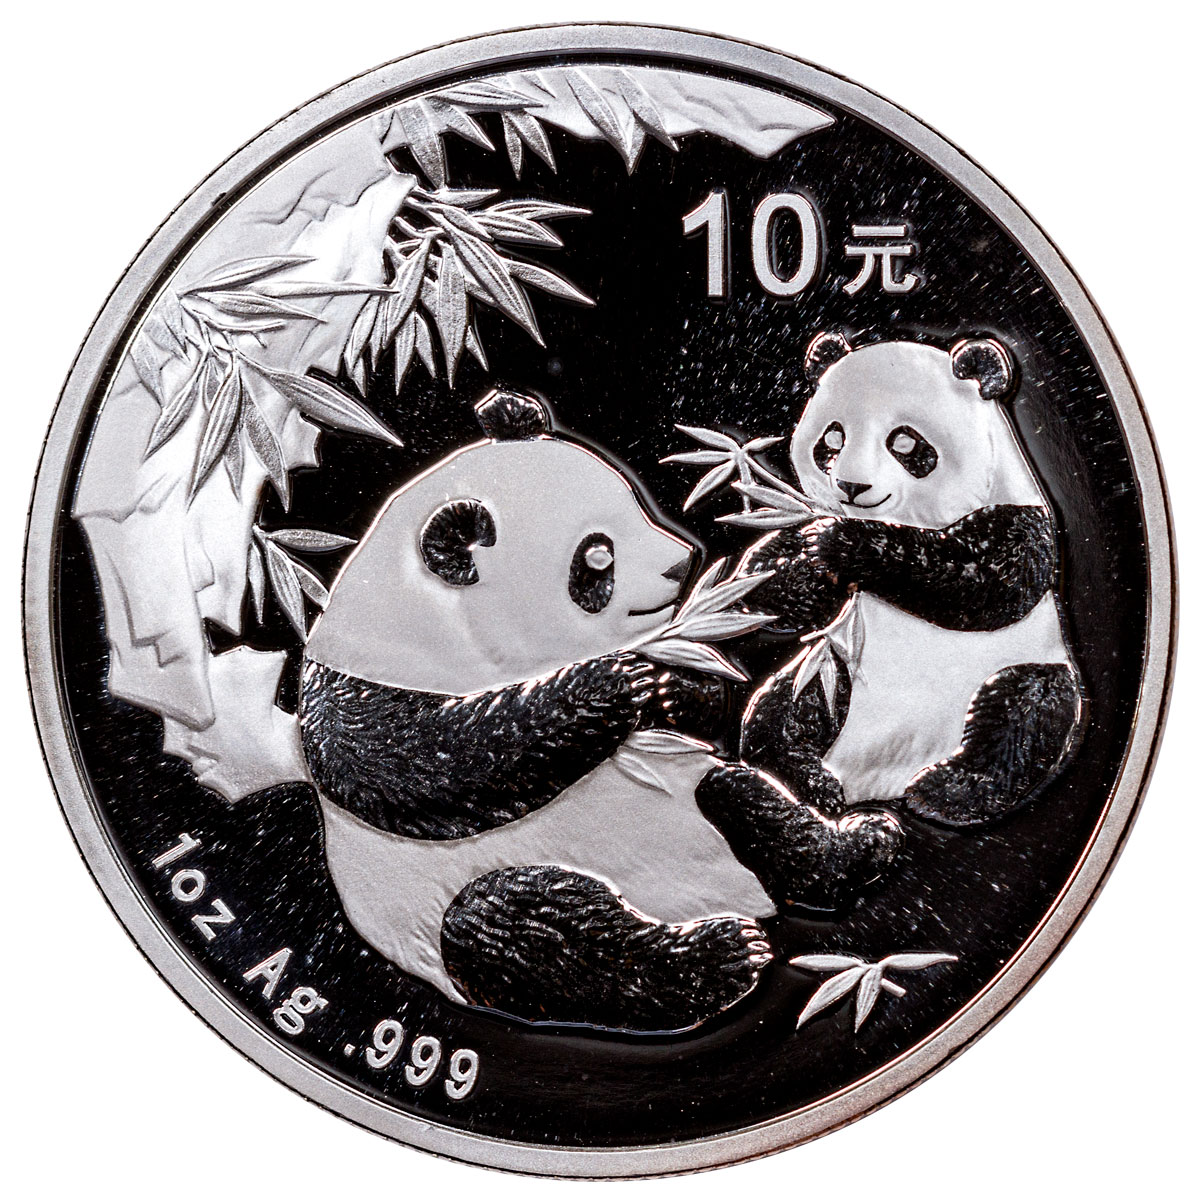 2006 China 1 oz Silver Panda ¥10 Coin GEM BU